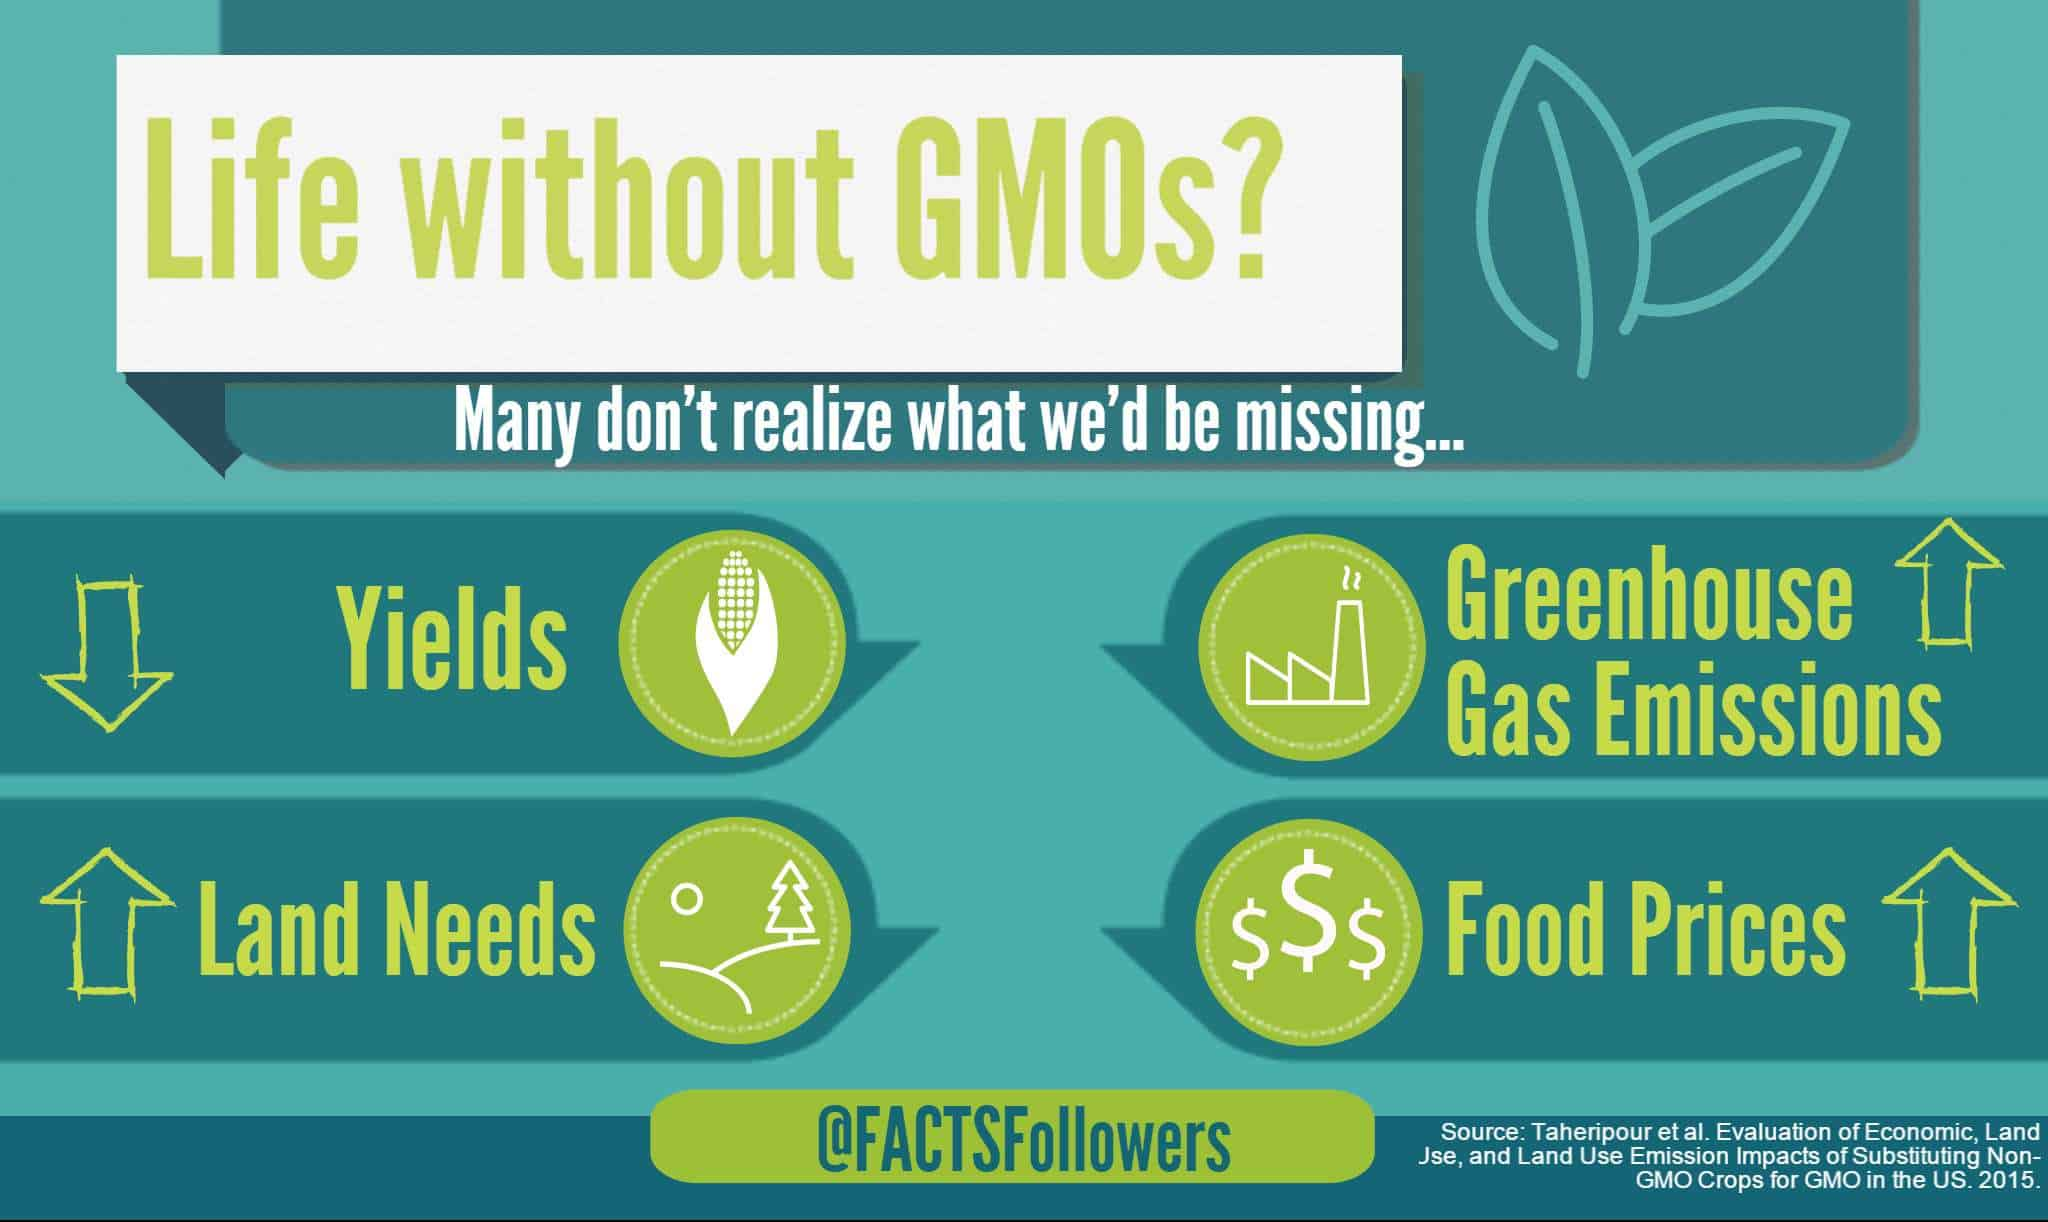 GMOs – foods that aren't bad